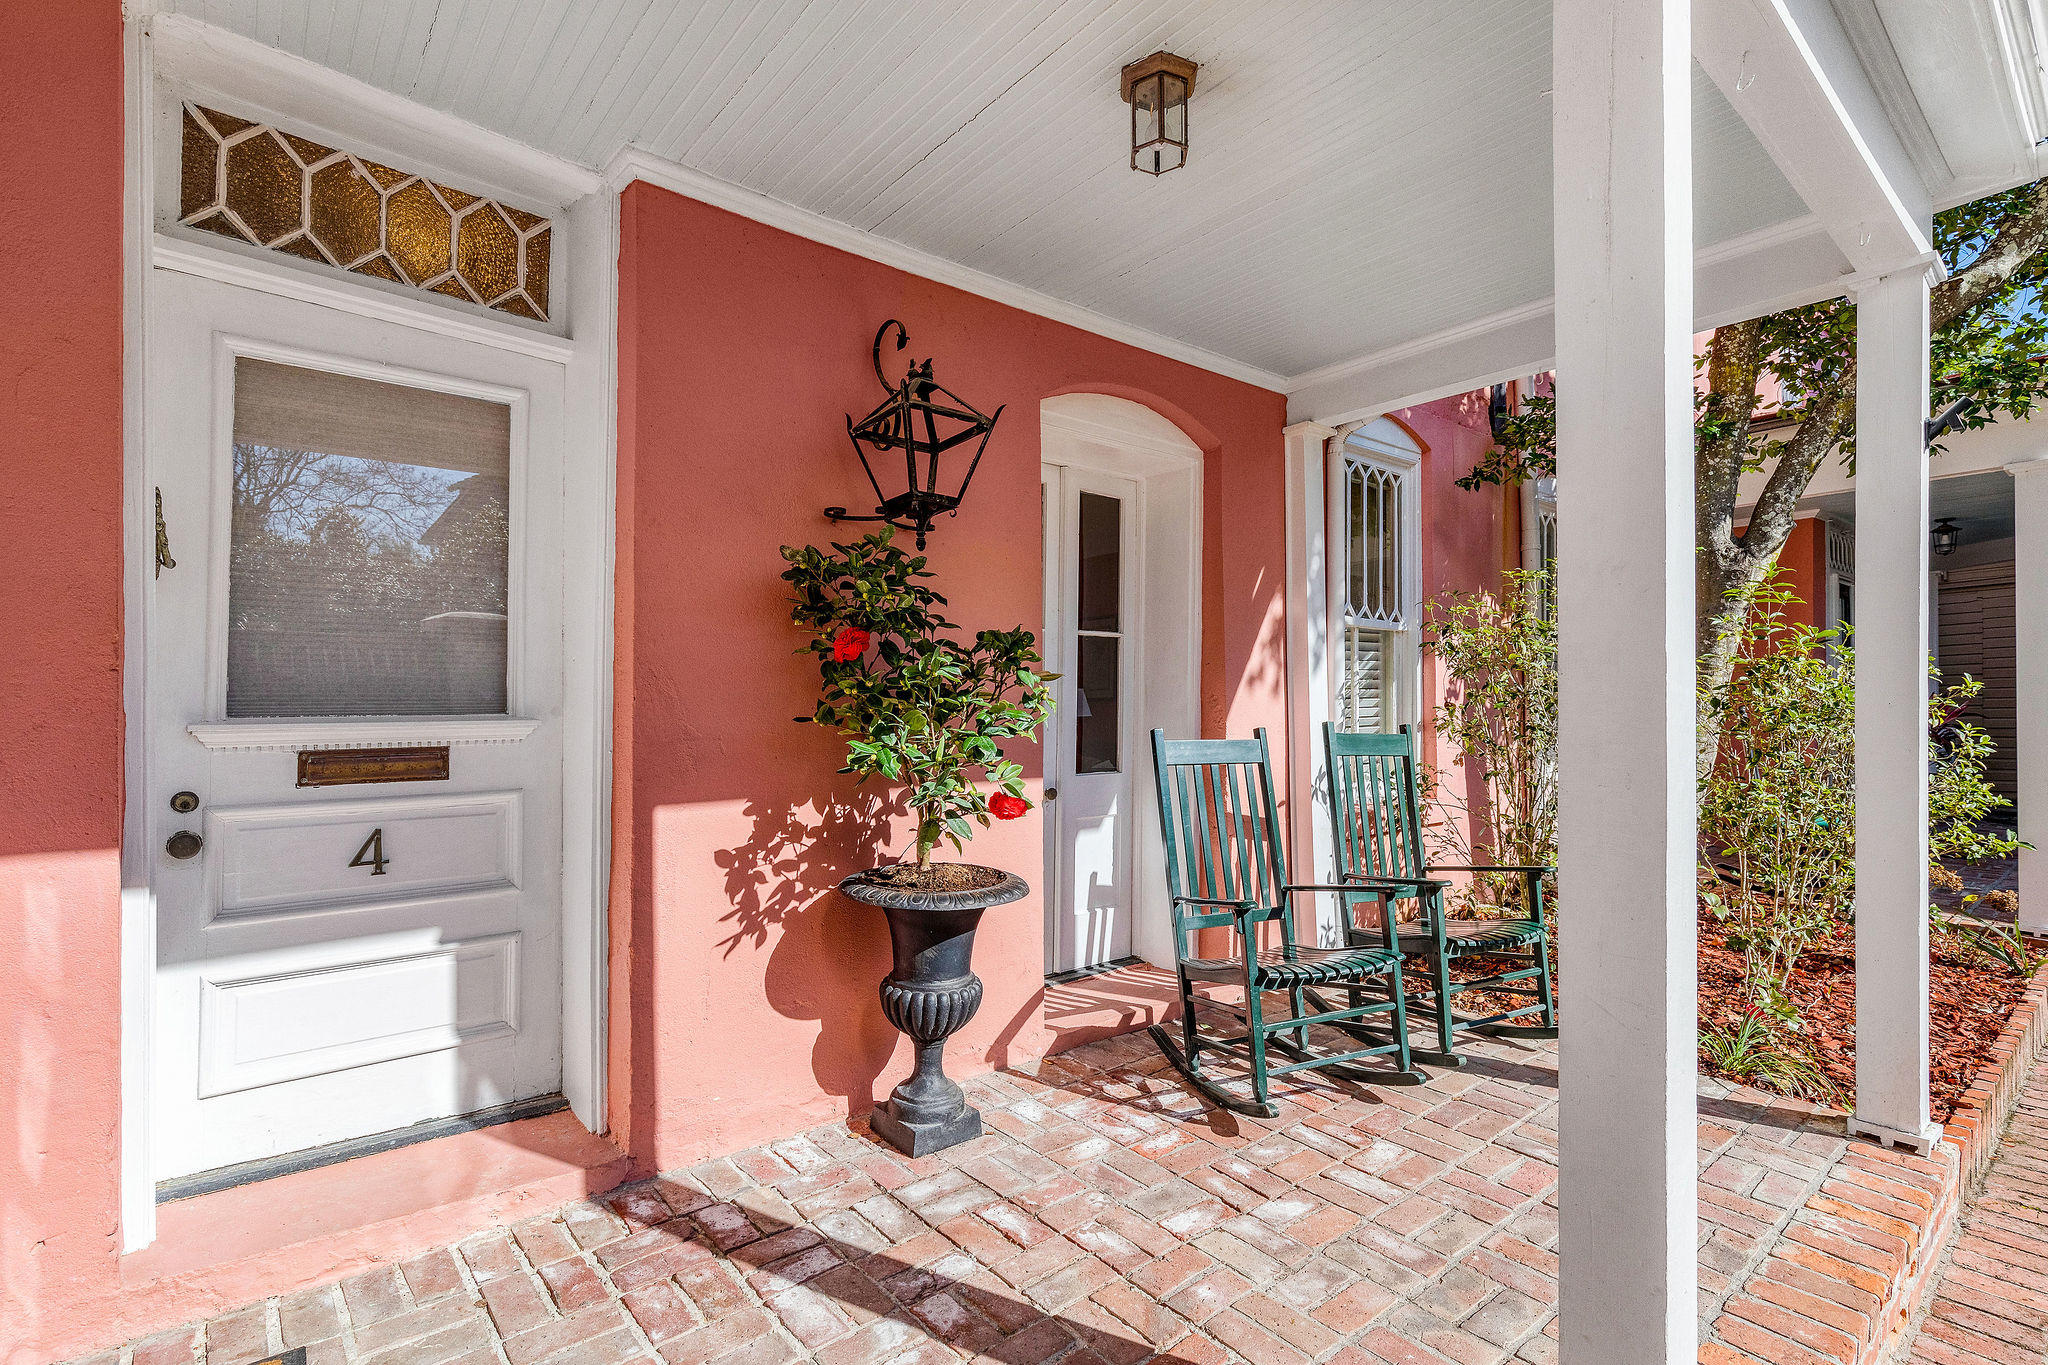 South of Broad Homes For Sale - 4 Weims, Charleston, SC - 17